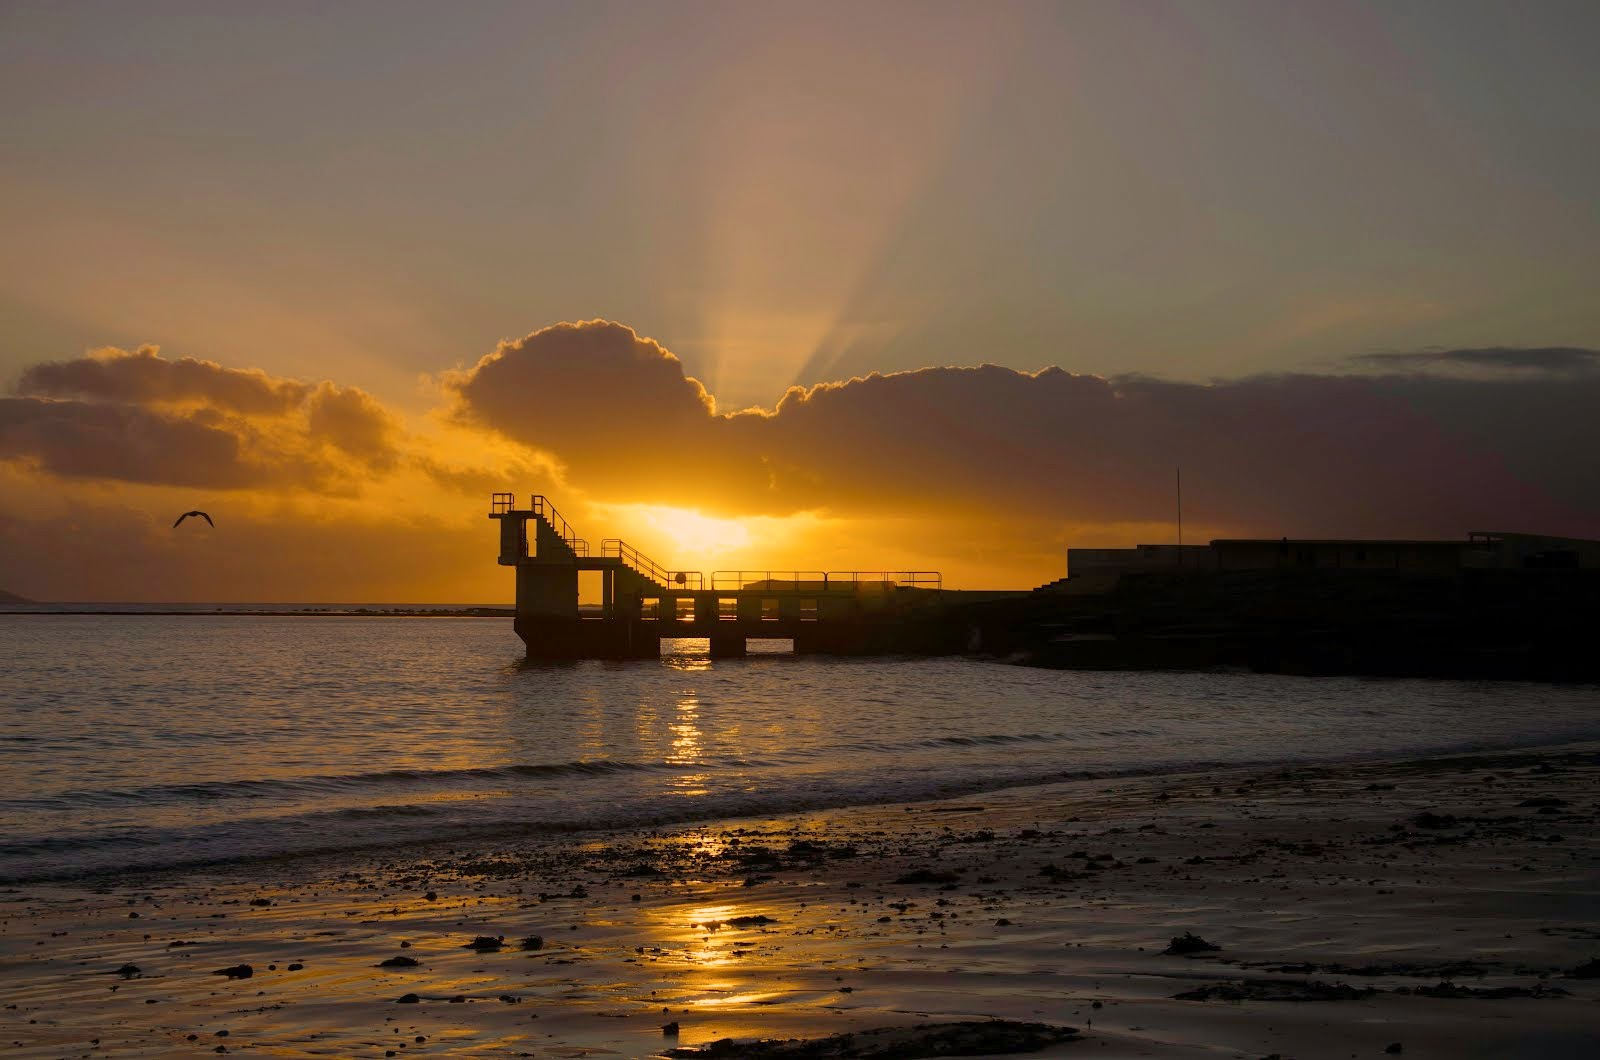 Sunset in Salthill